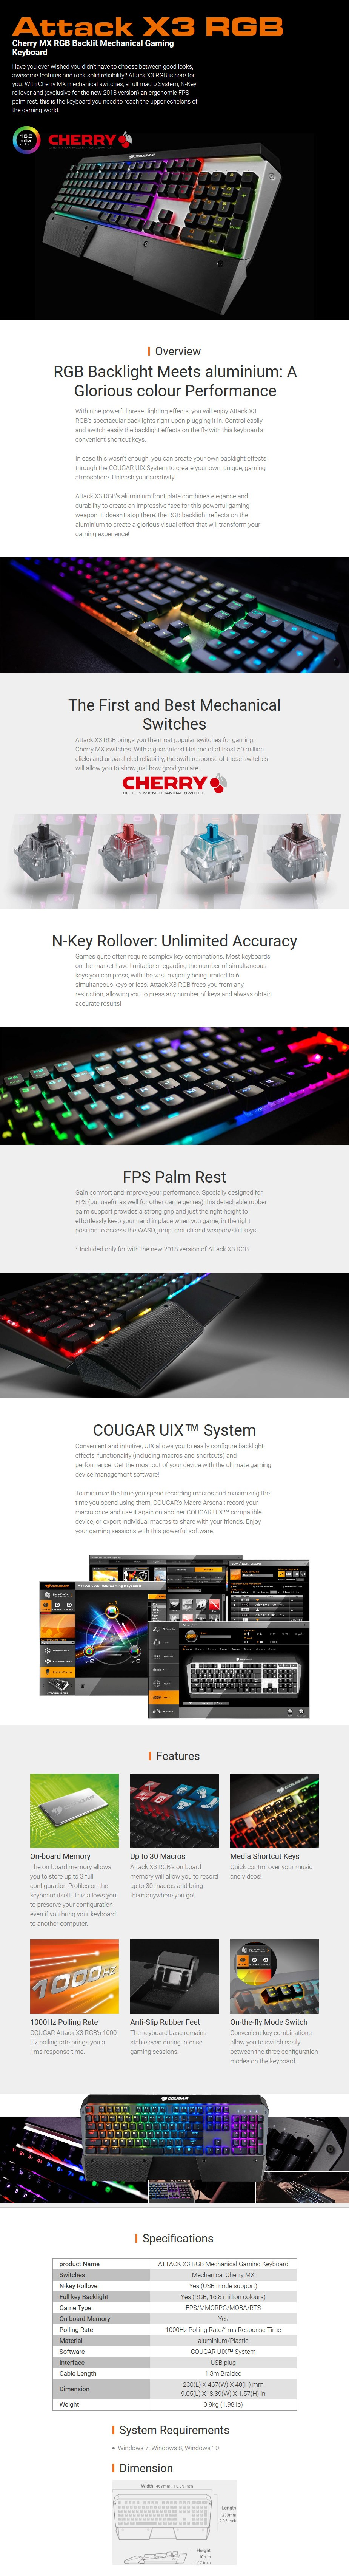 Cougar ATTACK X3 RGB Mechanical Gaming Keyboard - Cherry MX Brown (Version 2) - Desktop Overview 1